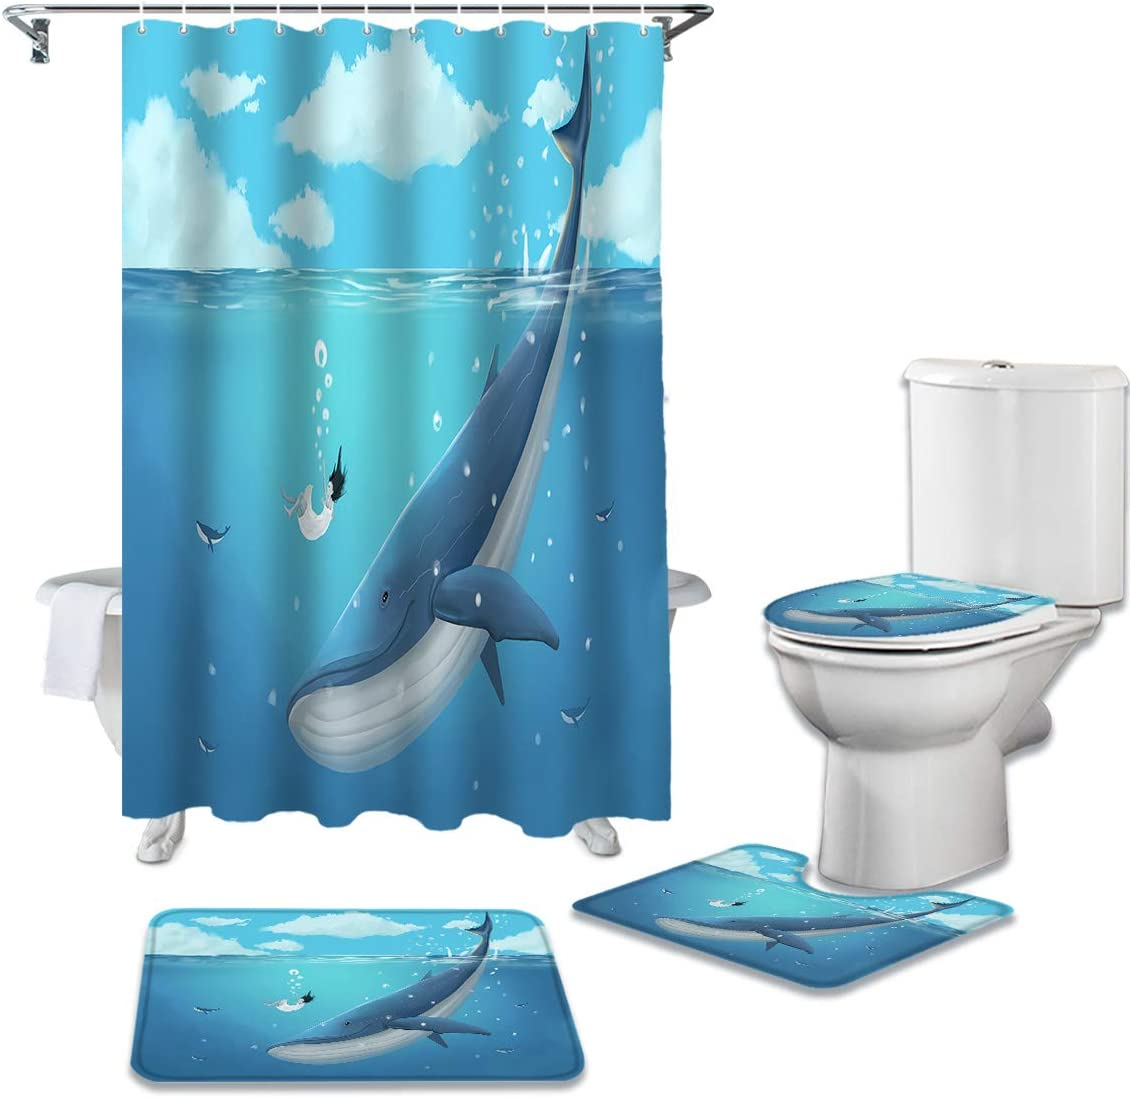 Branded goods Sea Japan Maker New Animals 4 Pcs Bathroom Sets Shower with Curtain Rug Non-Slip